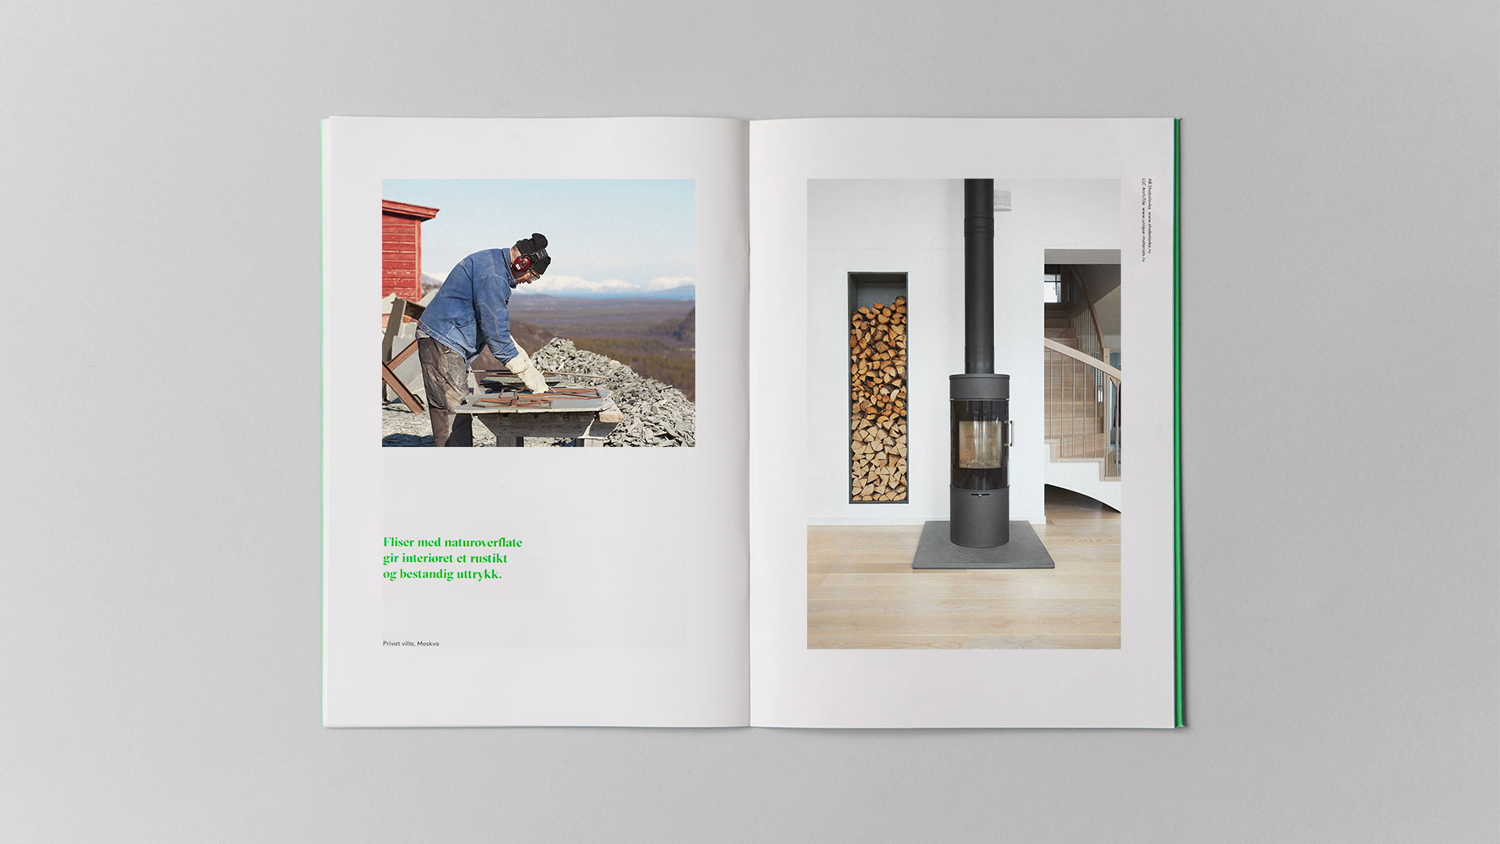 Brochure spread for Alta Quartzite mining and sales business Altaskifer designed by Neue, Norway